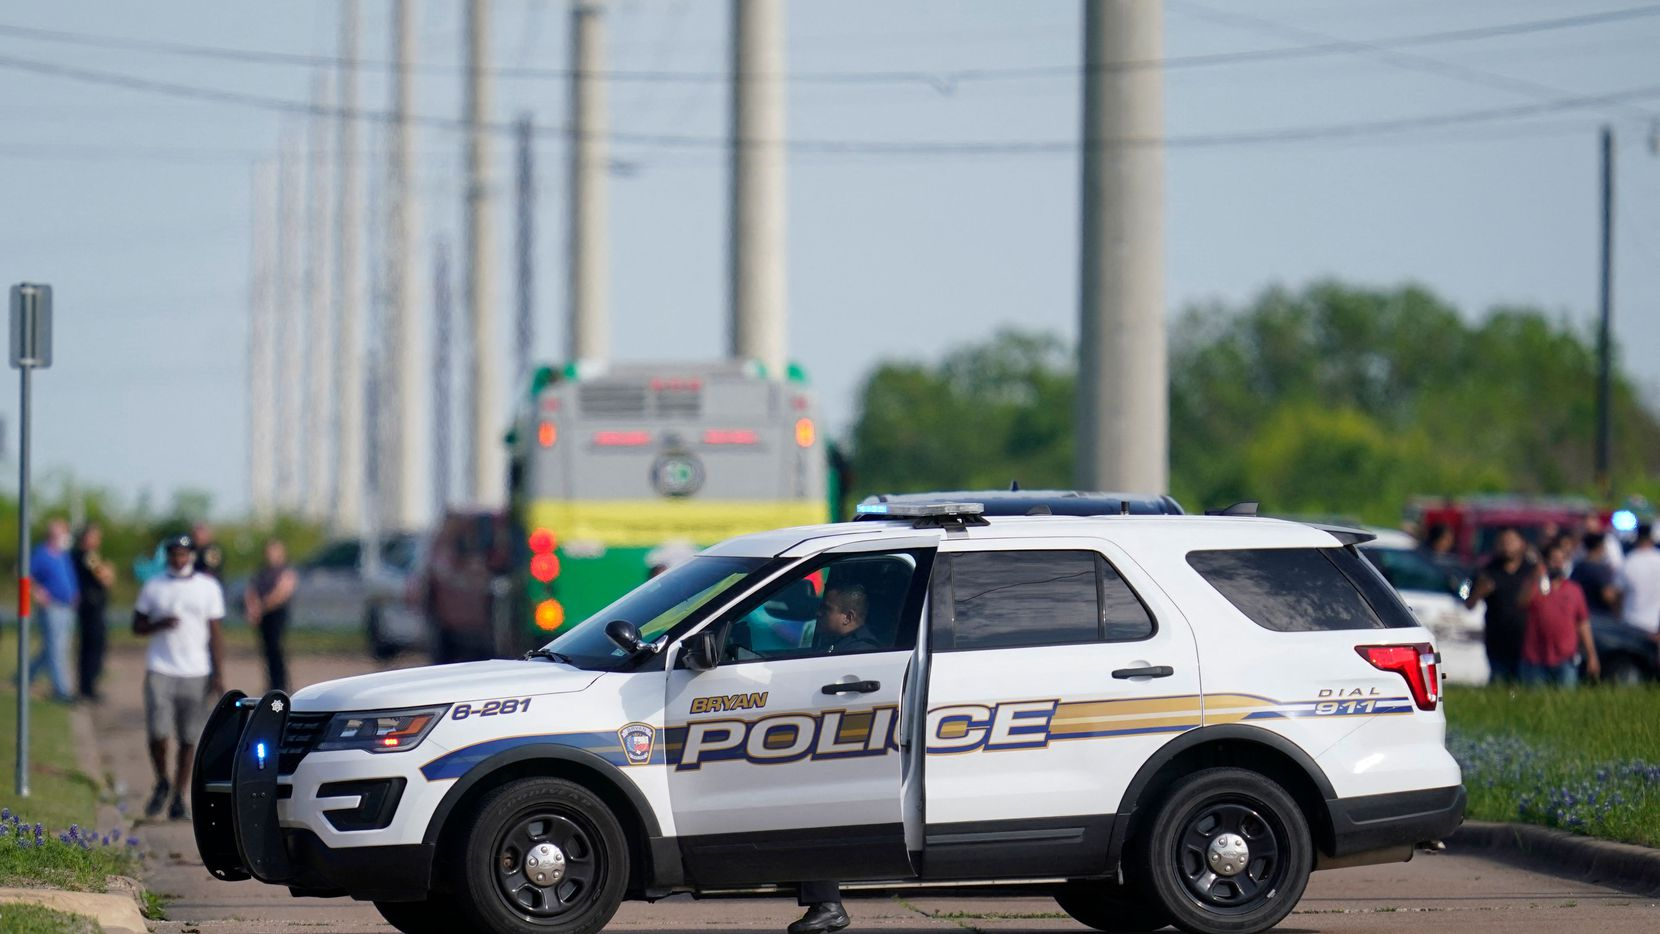 A Bryan police officer blocks road access near the scene of a mass shooting at an industrial park on Thursday.